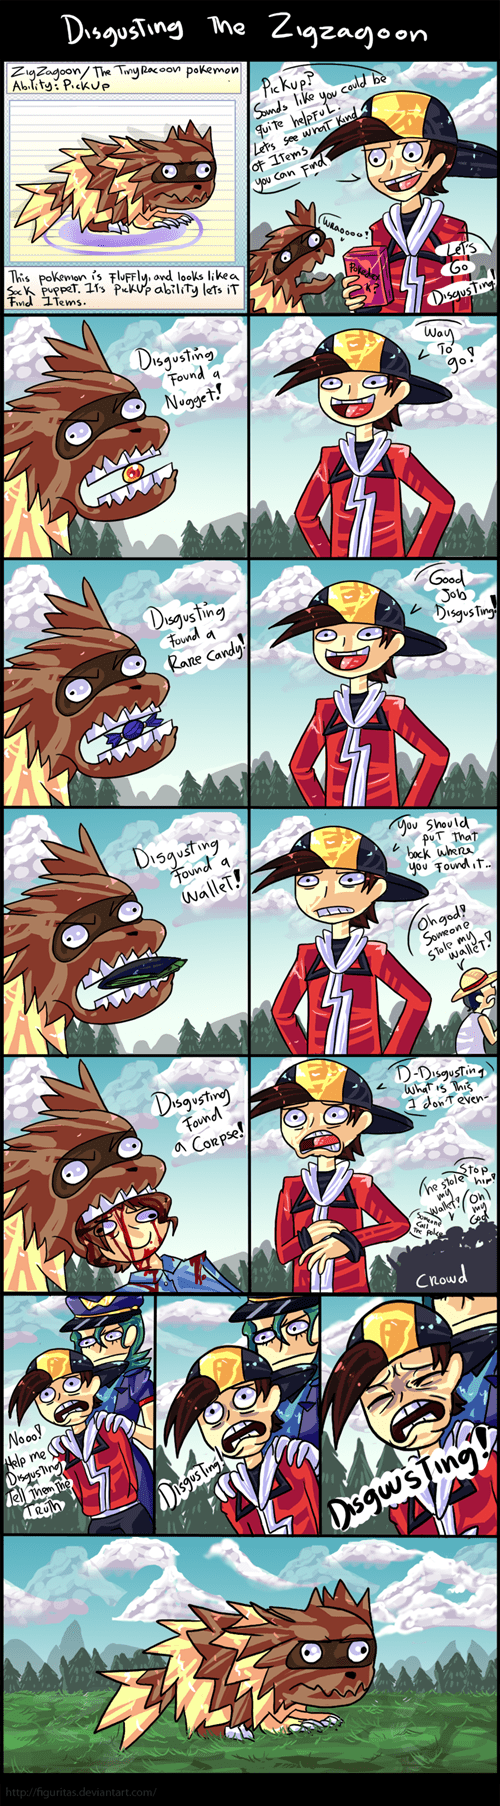 Pokémon zigzagoon abilities pickup disgusting web comics - 8426923264